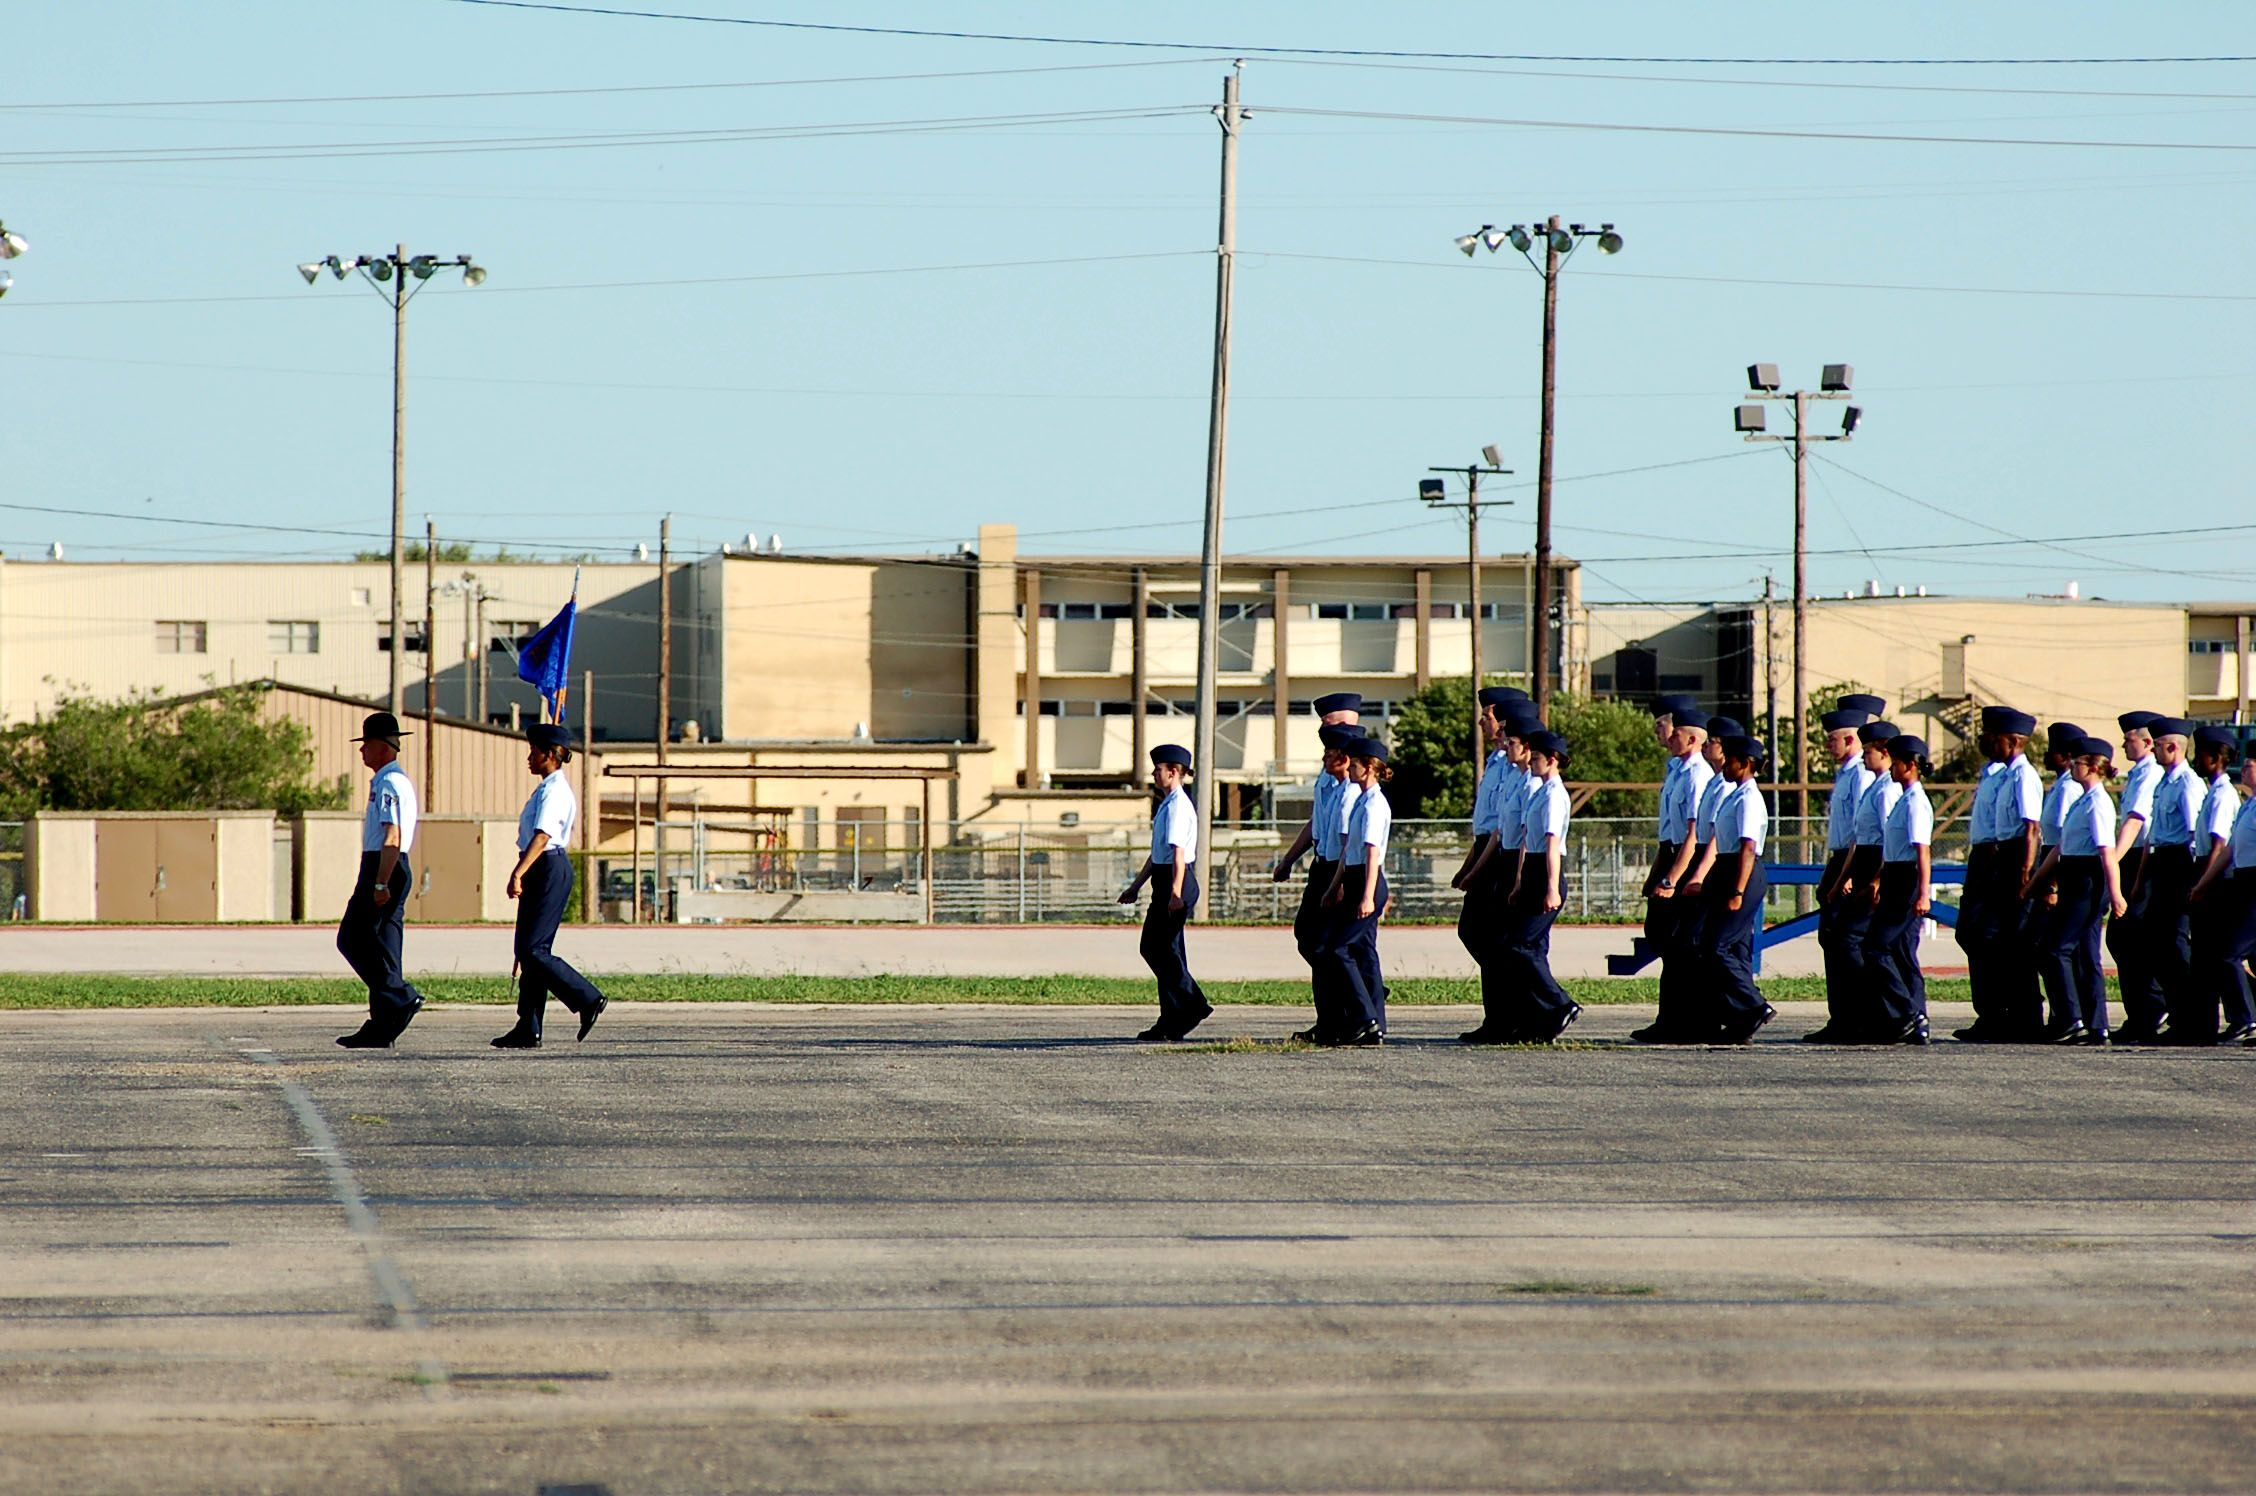 lackland afb in san antonio, tx...hubby was stationed